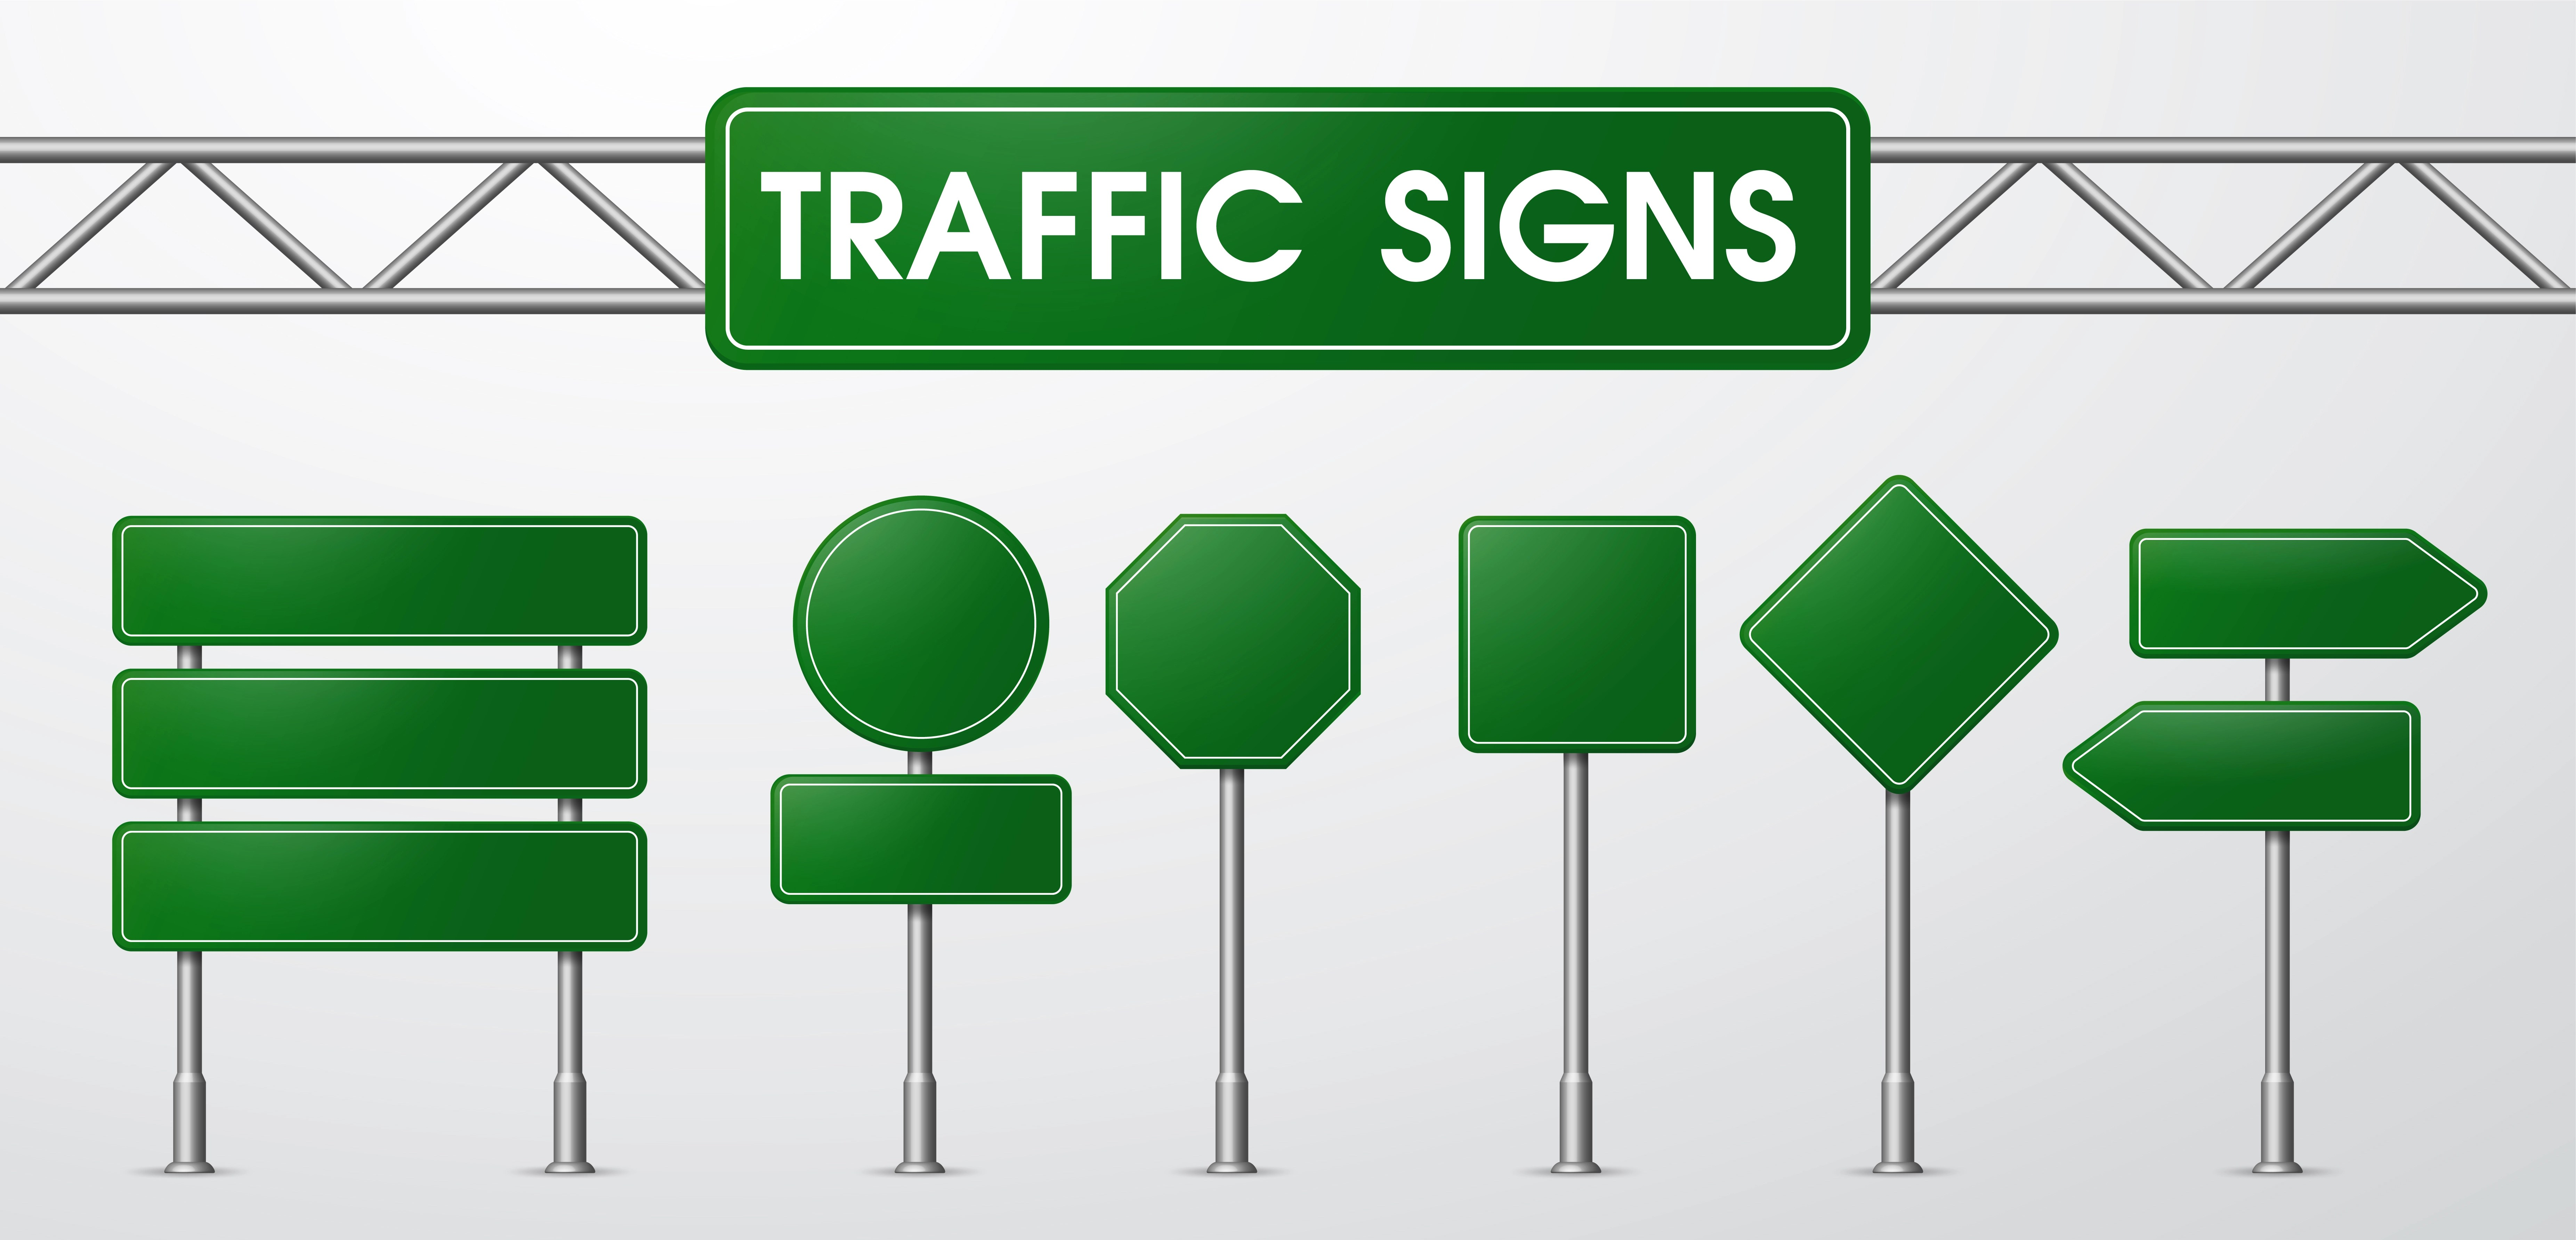 Traffic Signs In Realistic Style Trapped By The Road